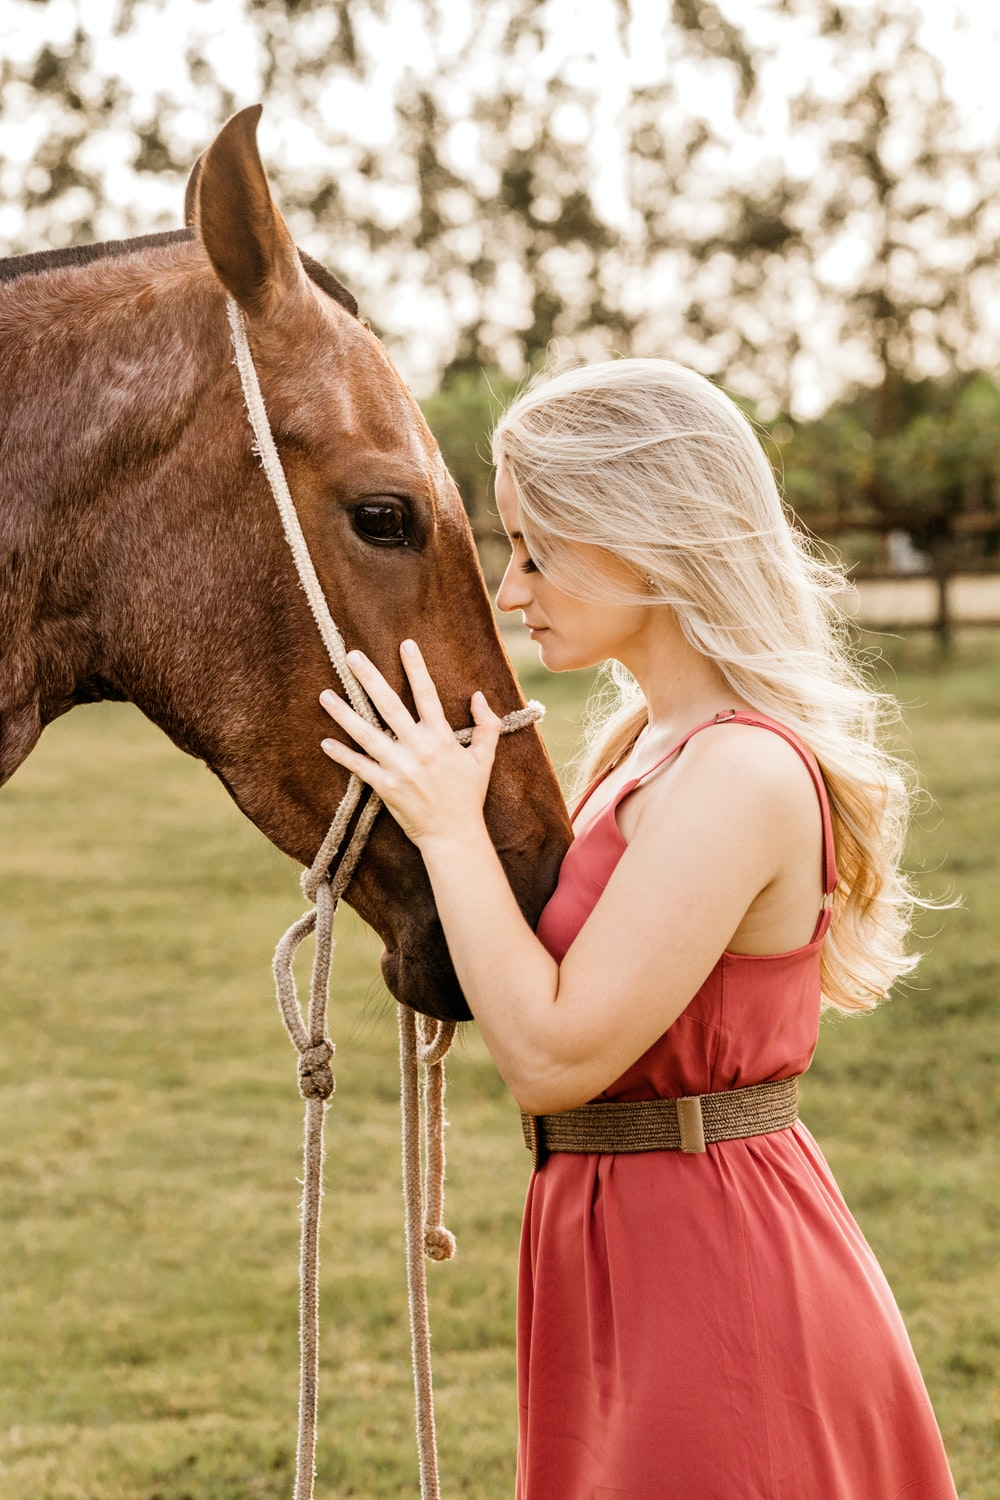 woman in red dress standing beside brown horse during daytime